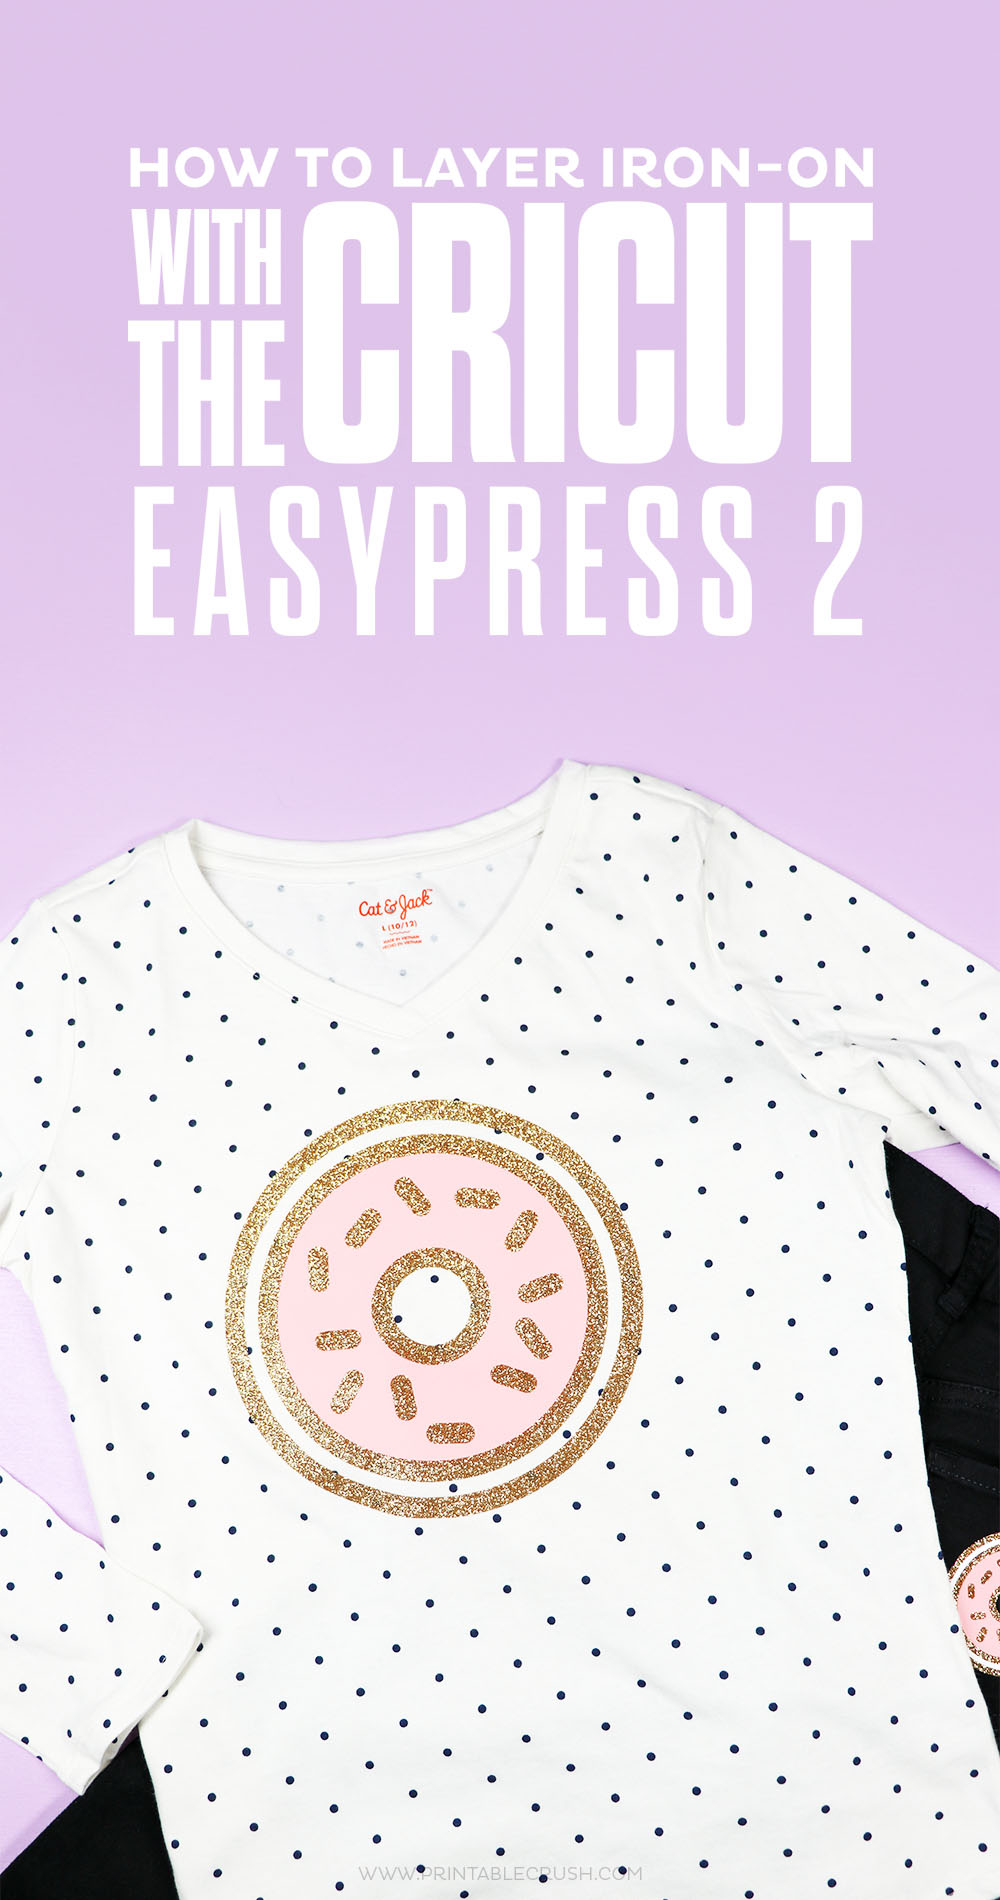 Learn to layer iron-on with the Cricut EasyPress 2 in this super easy tutorial!